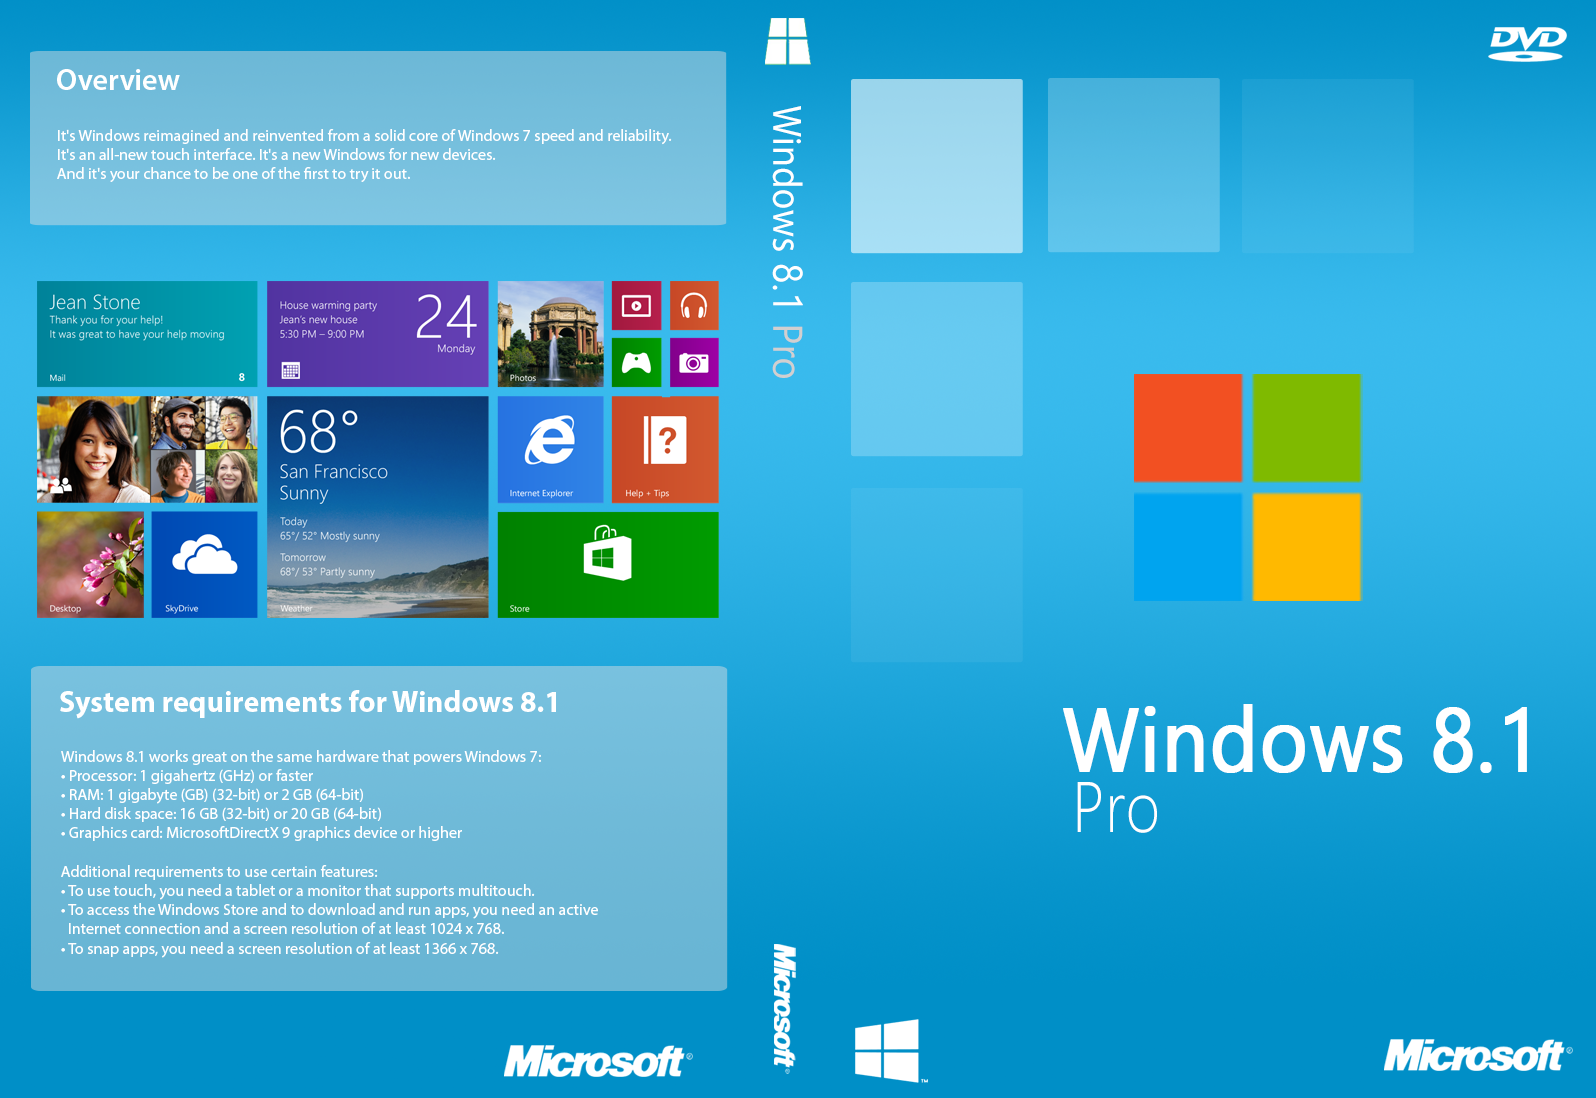 windows 8.1 pro media center key